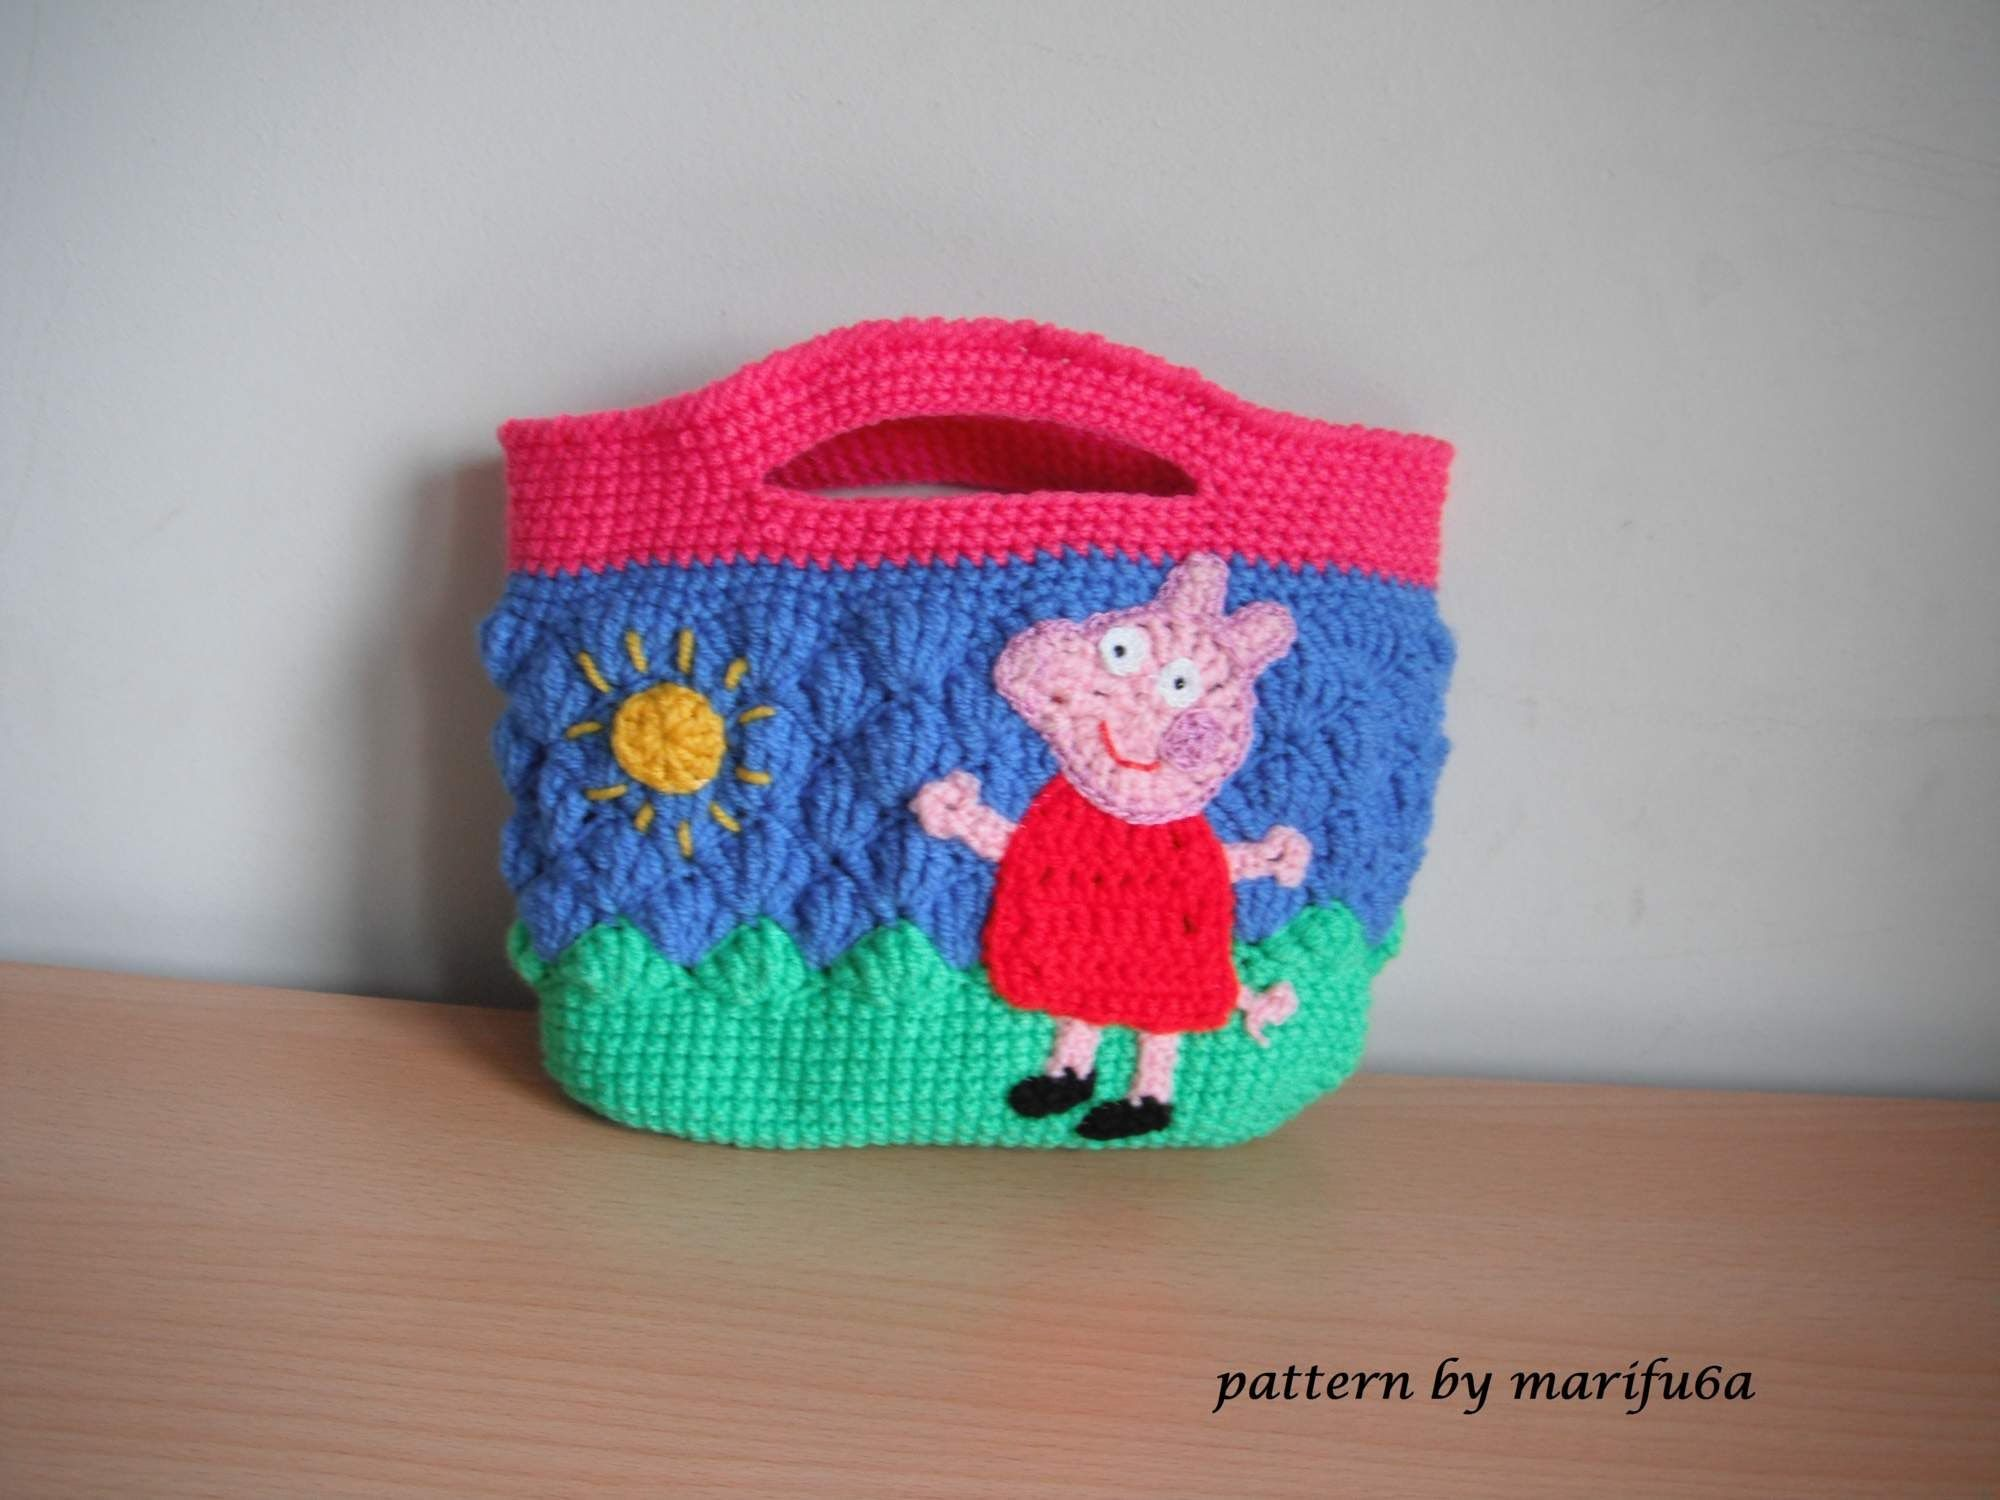 Peppa Pig Knitting Patterns : how to crochet peppa pig purse bag free pattern tutorial by marifu6a Croche...